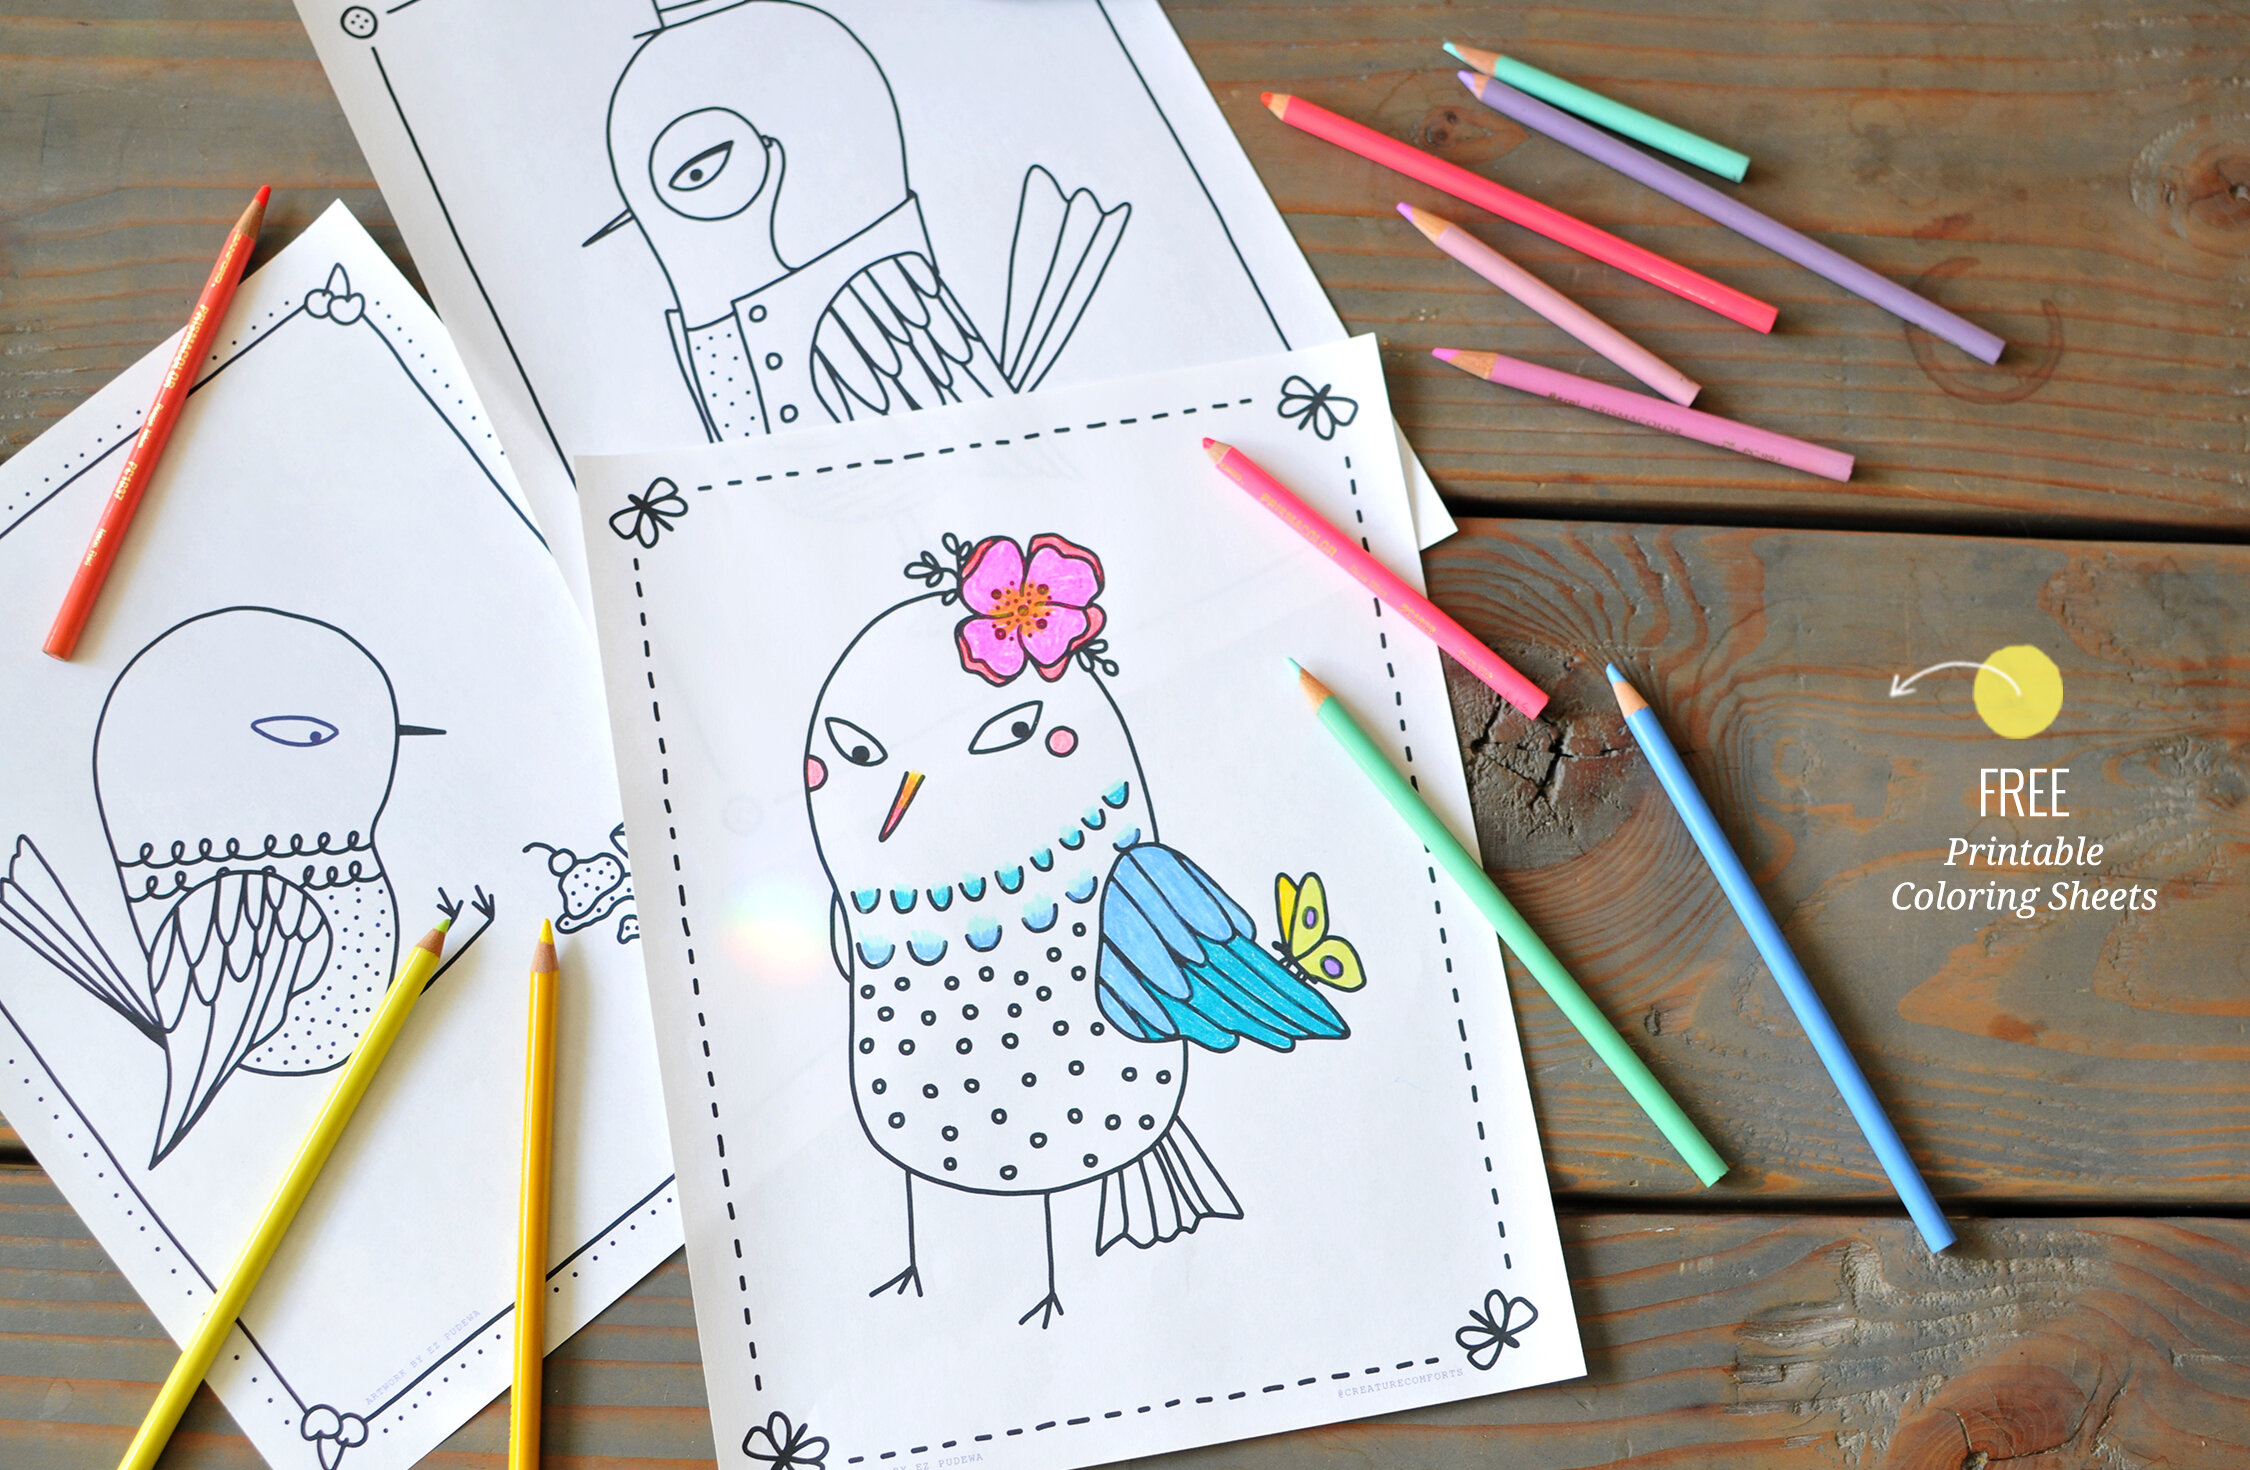 Free Coloring Sheets + Printables Roundup — Creature Comforts